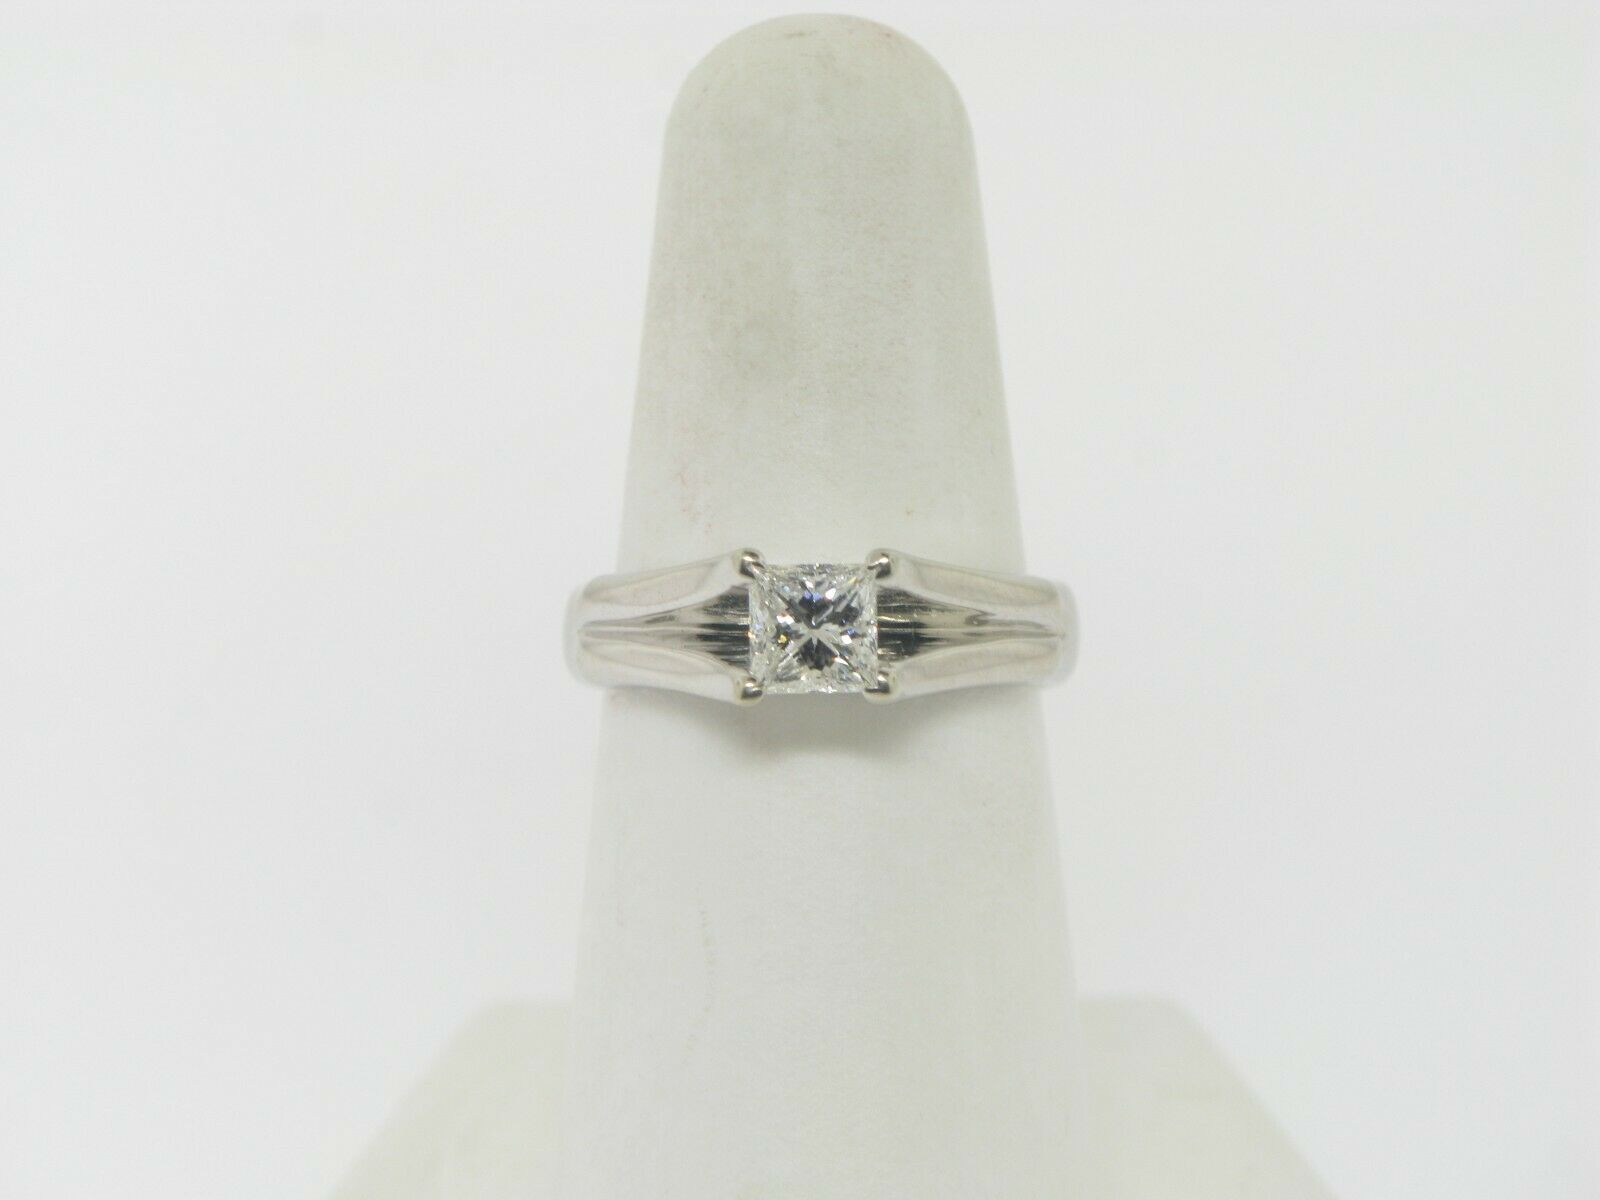 18K White Gold .64 CT Princess Cut Engagement Ring (Internally Flawless) (GIA) 2